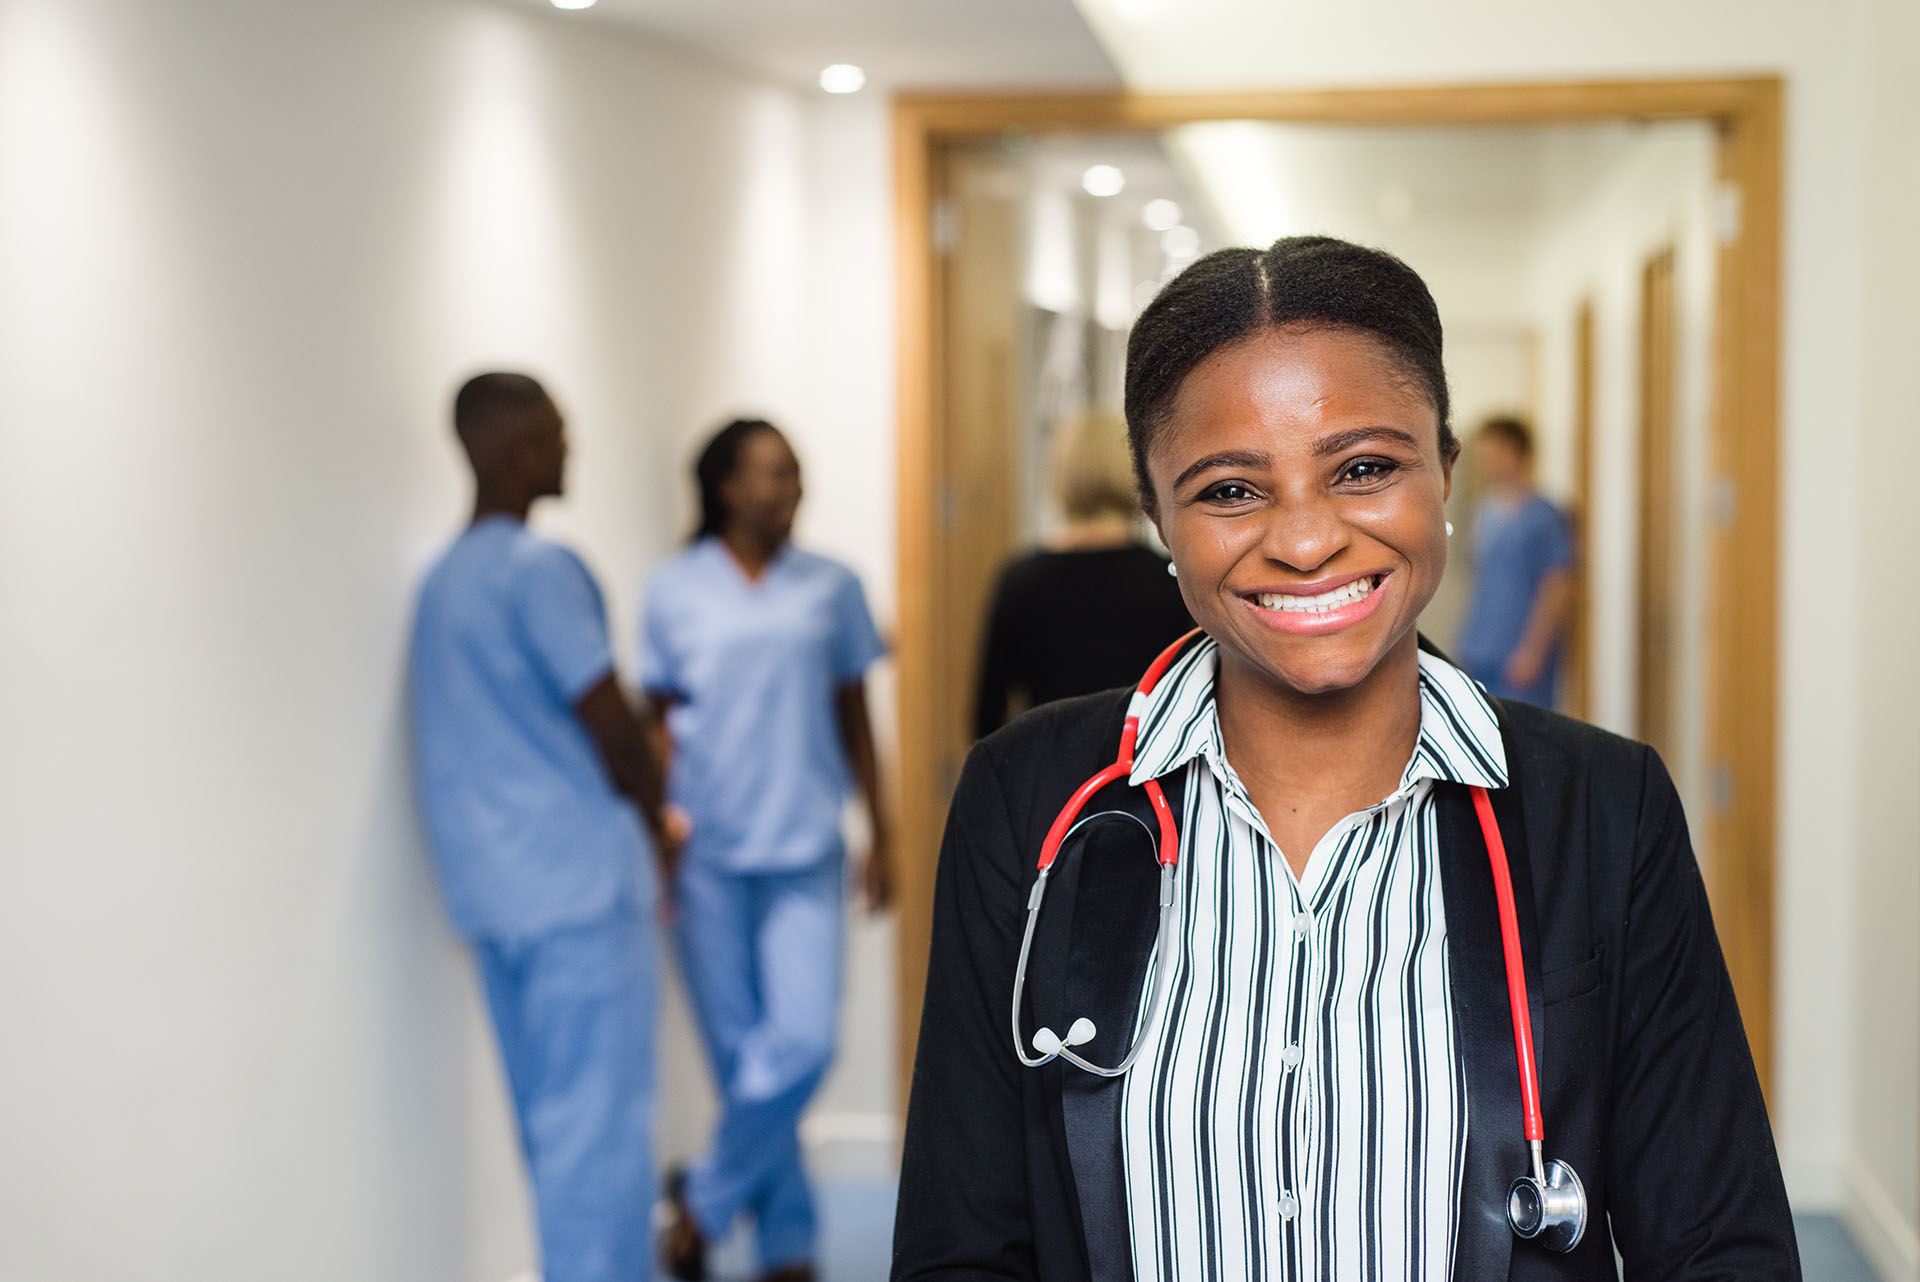 Health professional smiling with stethoscope, other health professionals in background